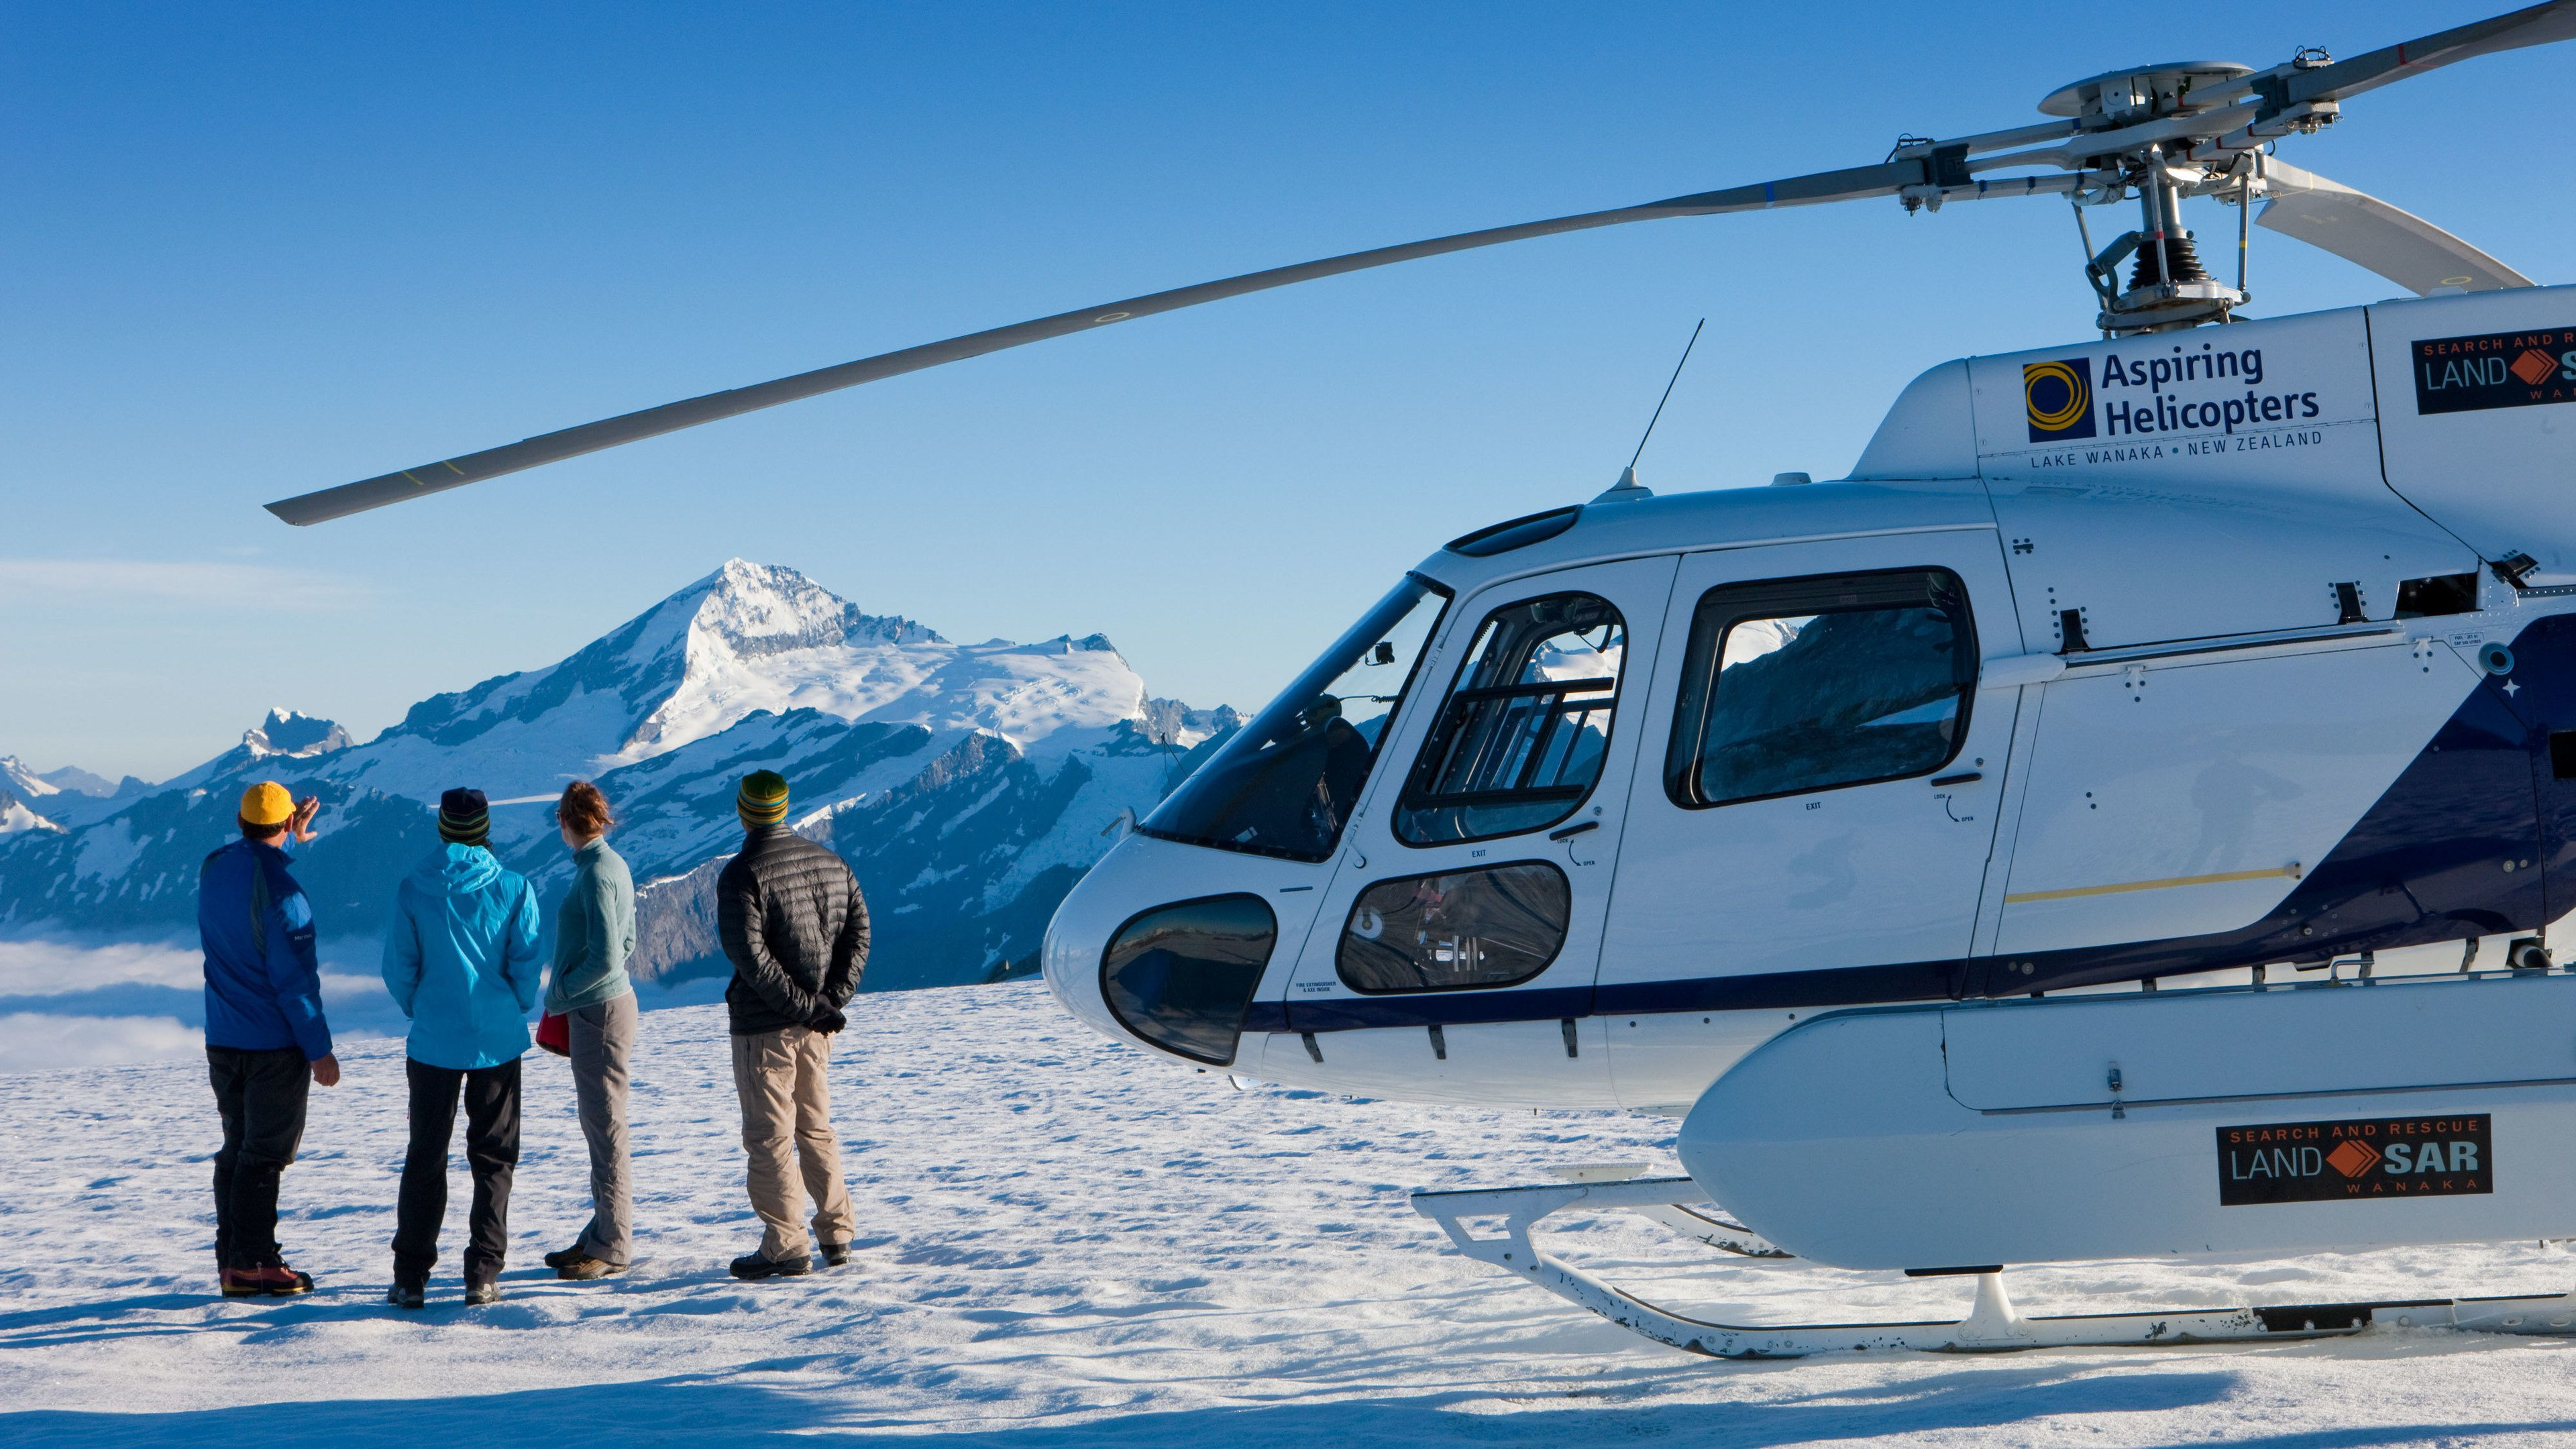 Tour group next to a Helicopter on a mountain top